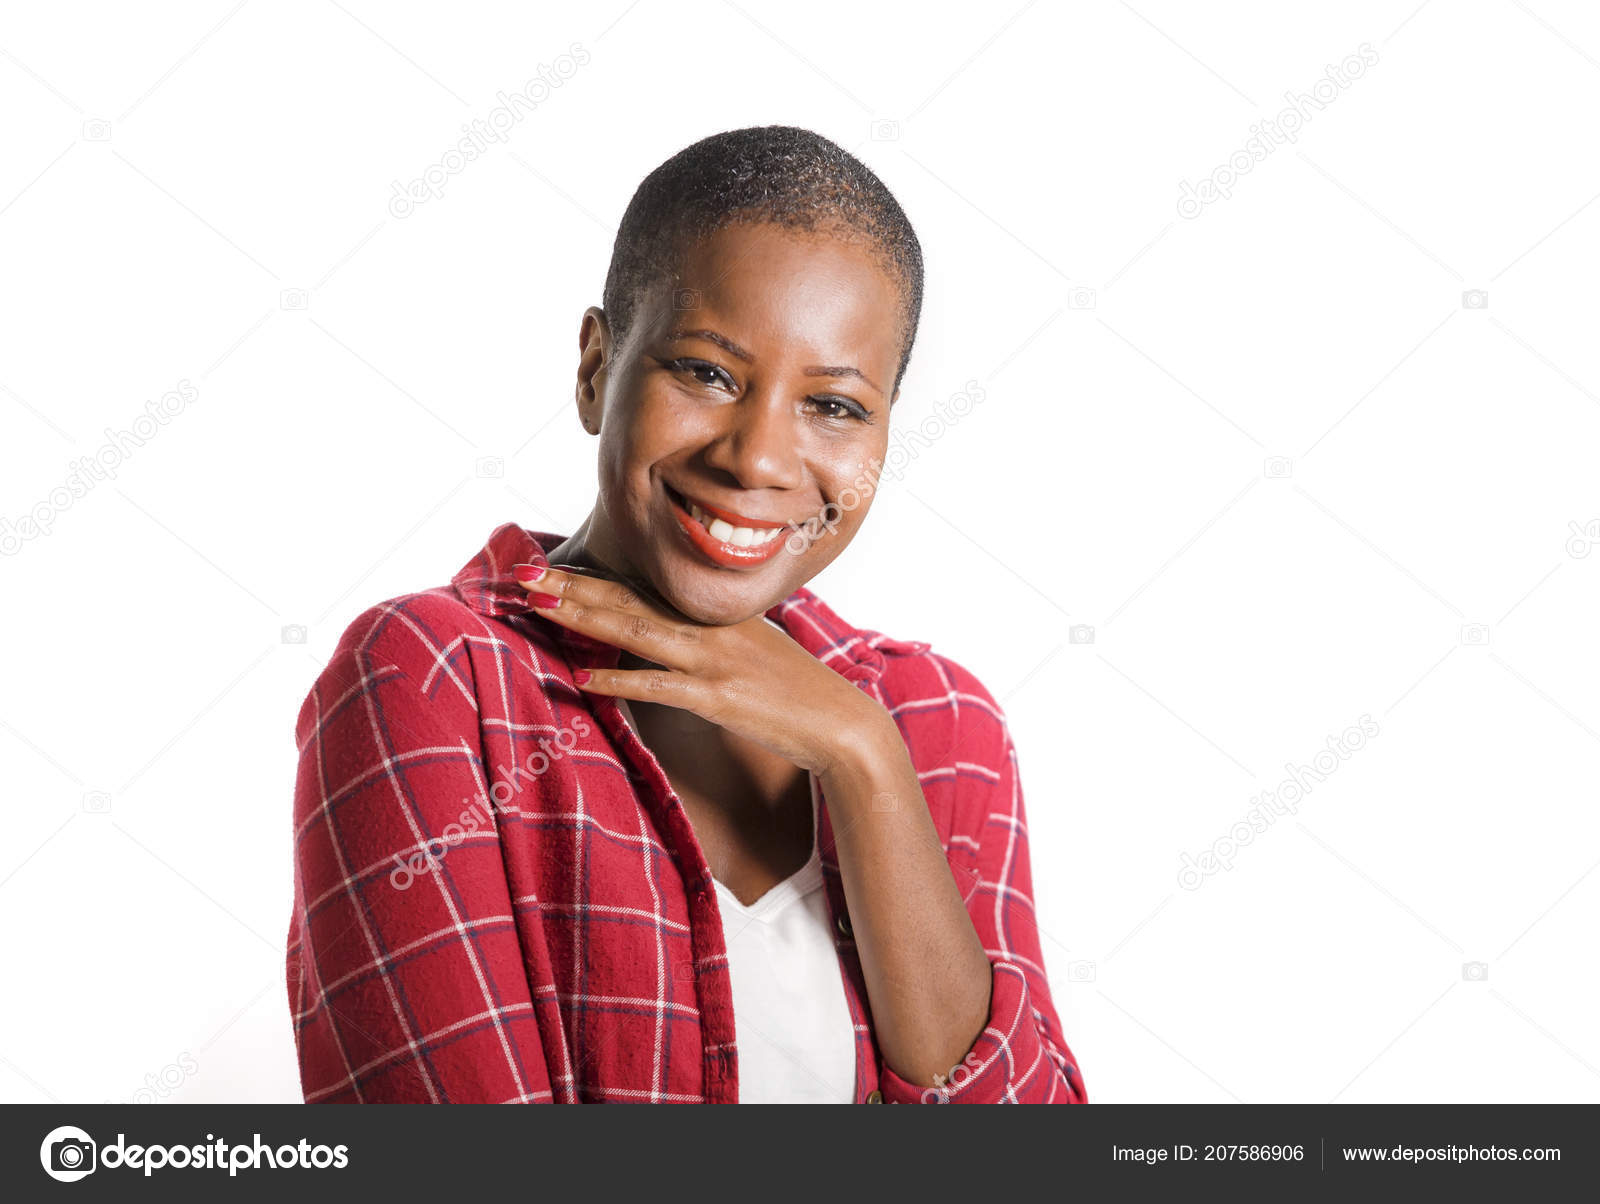 49156147543219 Lifestyle fresh portrait of young attractive and natural black afro  american woman in casual shirt smiling positive isolated posing cheerful  feeling happy ...